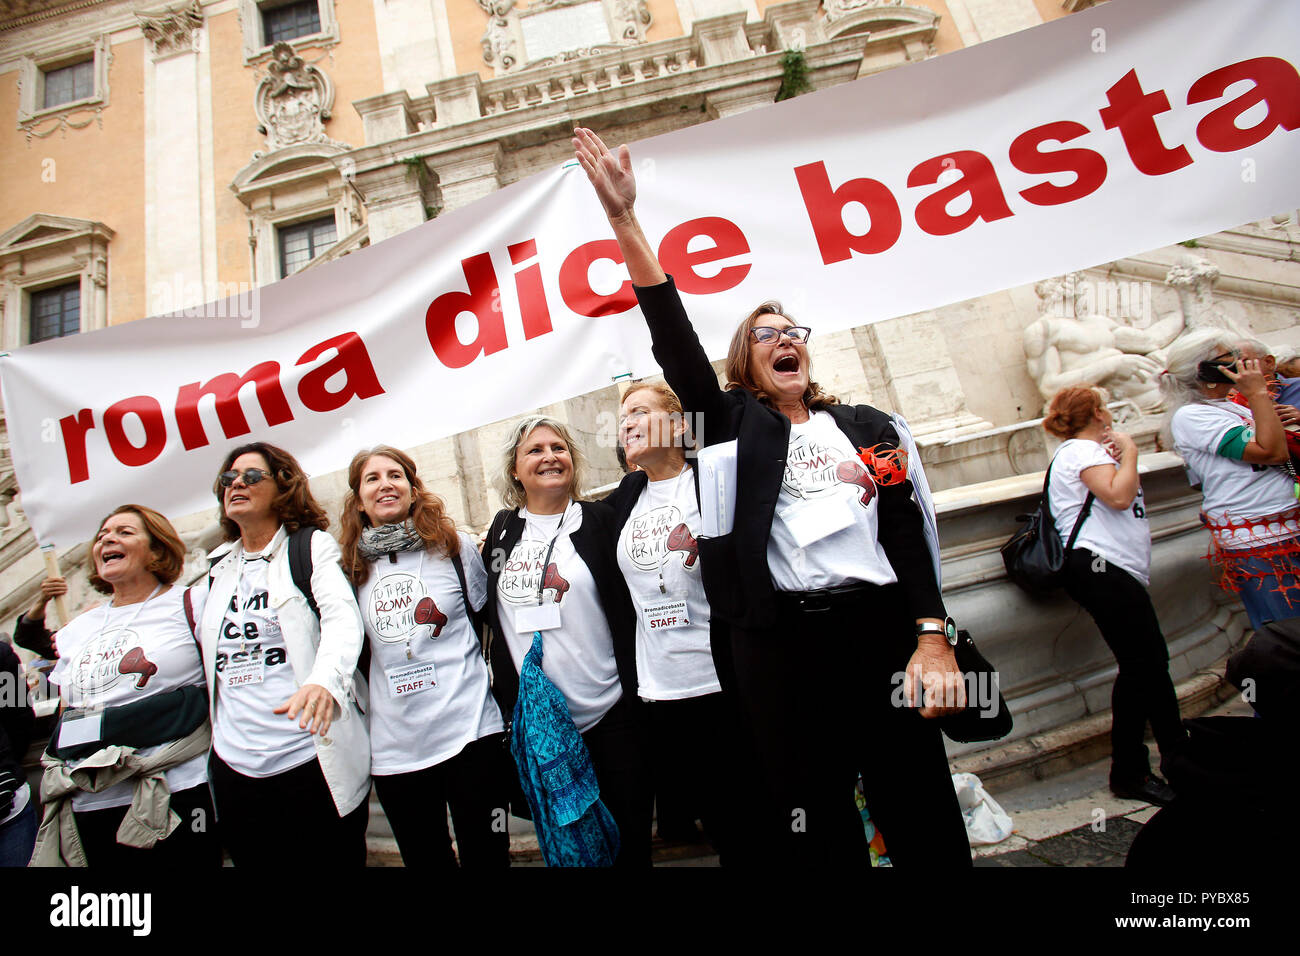 Rome, Italy. 27th Oct, 2018. Banner Rome says stop and the 6 women promoters of the demonstration Rome October 27th 2018. Campidoglio Square. Demonstration of roman citizens agains the mayor and against the deterioration and the huge problems that have been afflicting Rome during the last months, like garbage, carelessness and huge and dangerous holes in the streets. The sit-in was organized by 6 women that created the movement 'Rome says Stop'. Foto Samantha Zucchi Insidefoto Credit: insidefoto srl/Alamy Live News - Stock Image